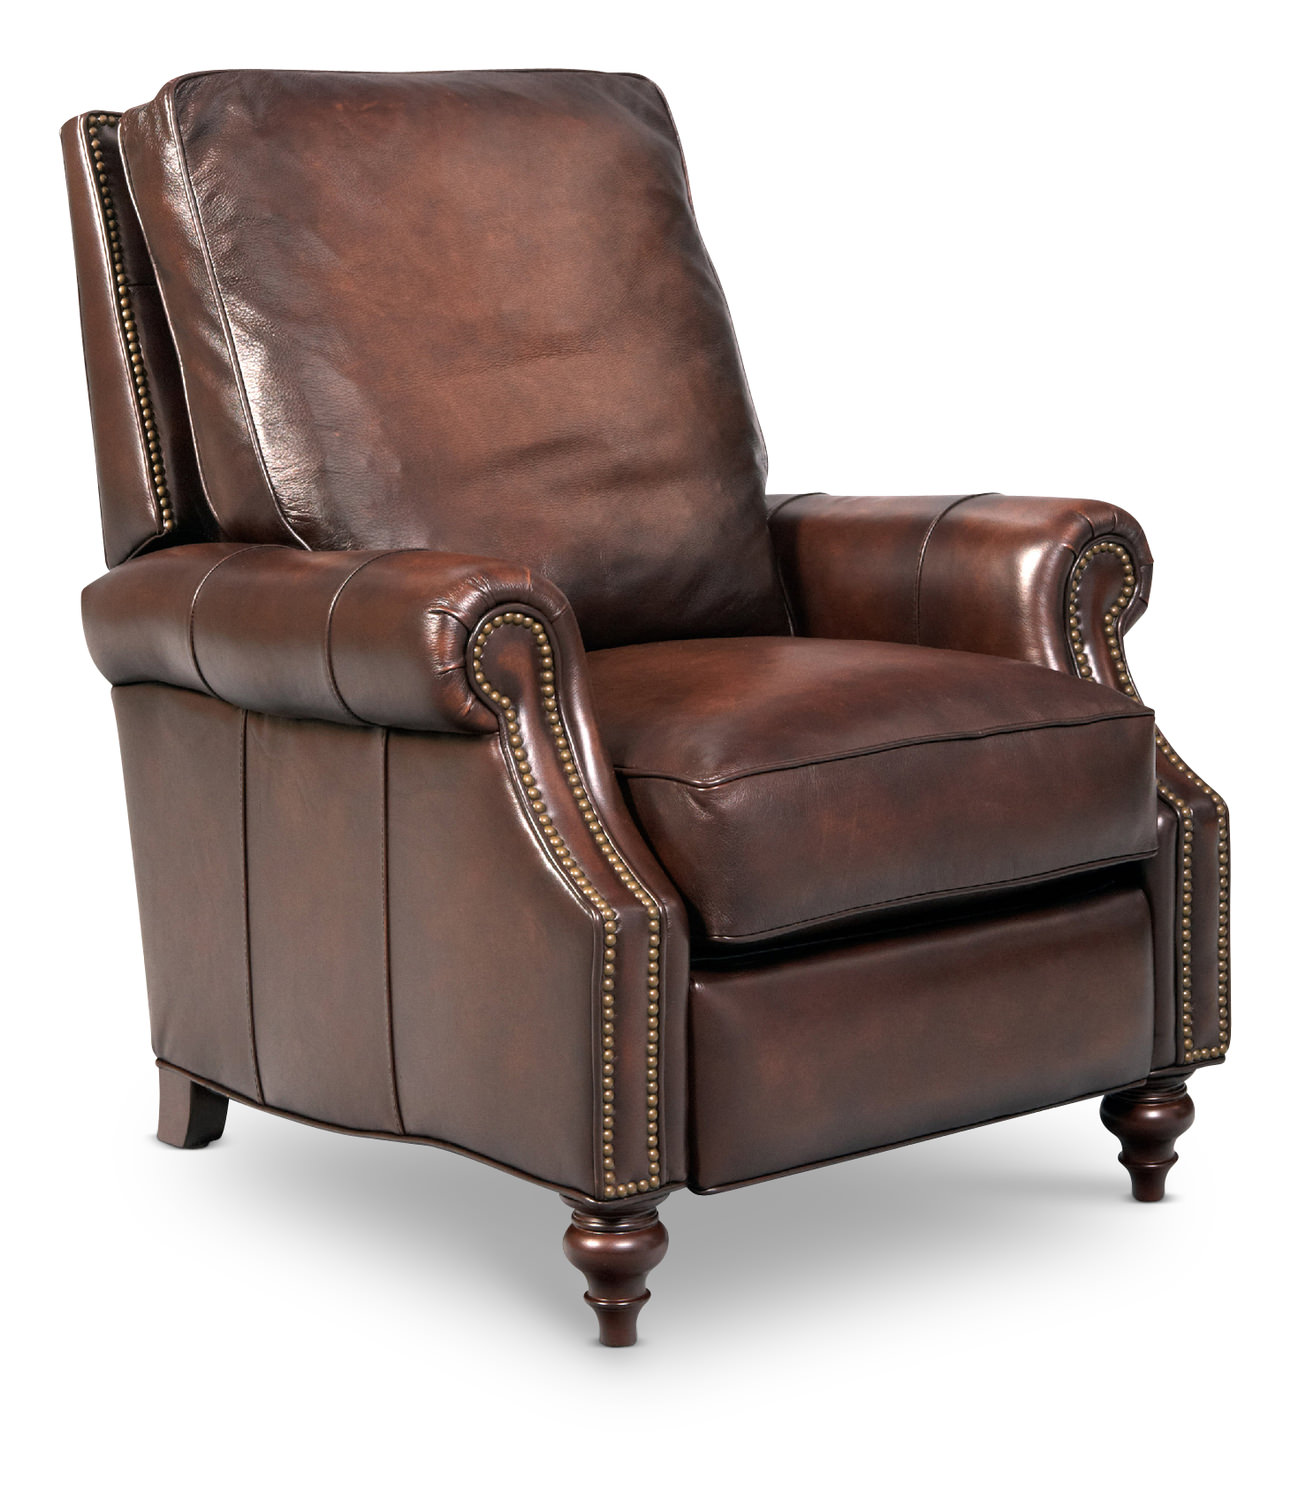 Sedona Leather Recliner By Hooker Furniture Hom Furniture